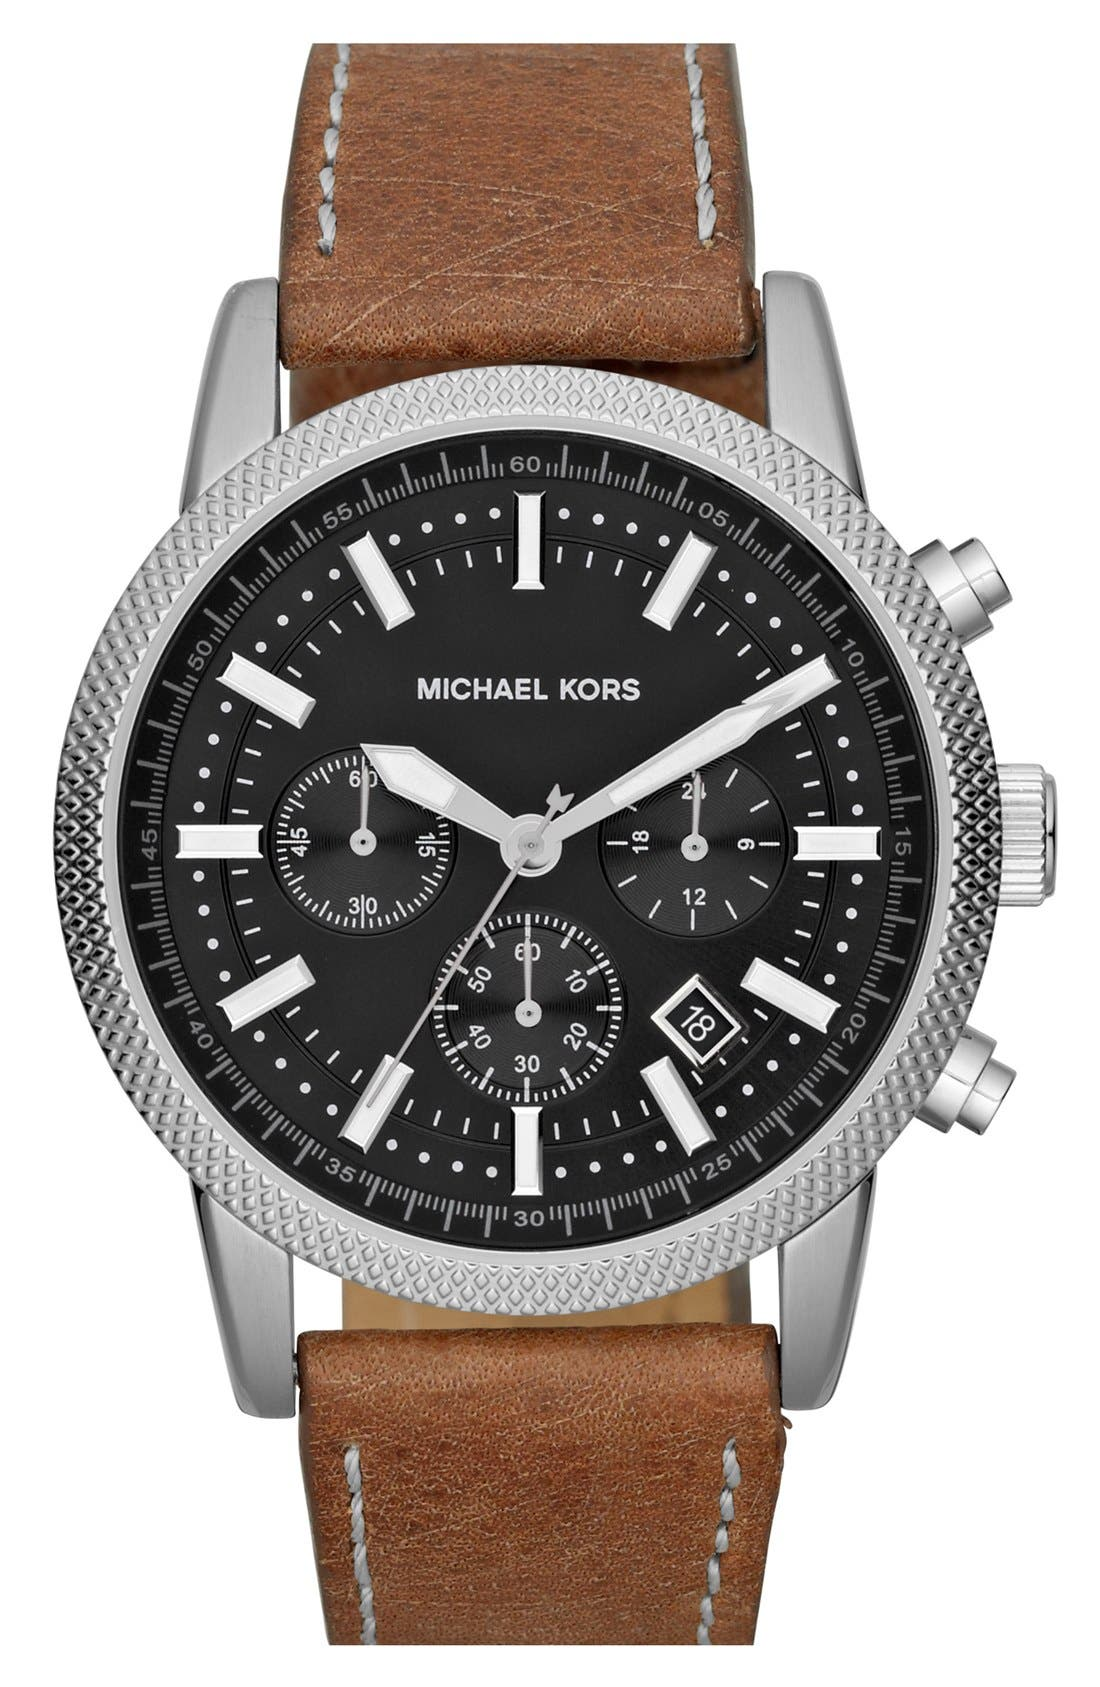 Main Image - Michael Kors 'Scout' Chronograph Leather Strap Watch, 43mm